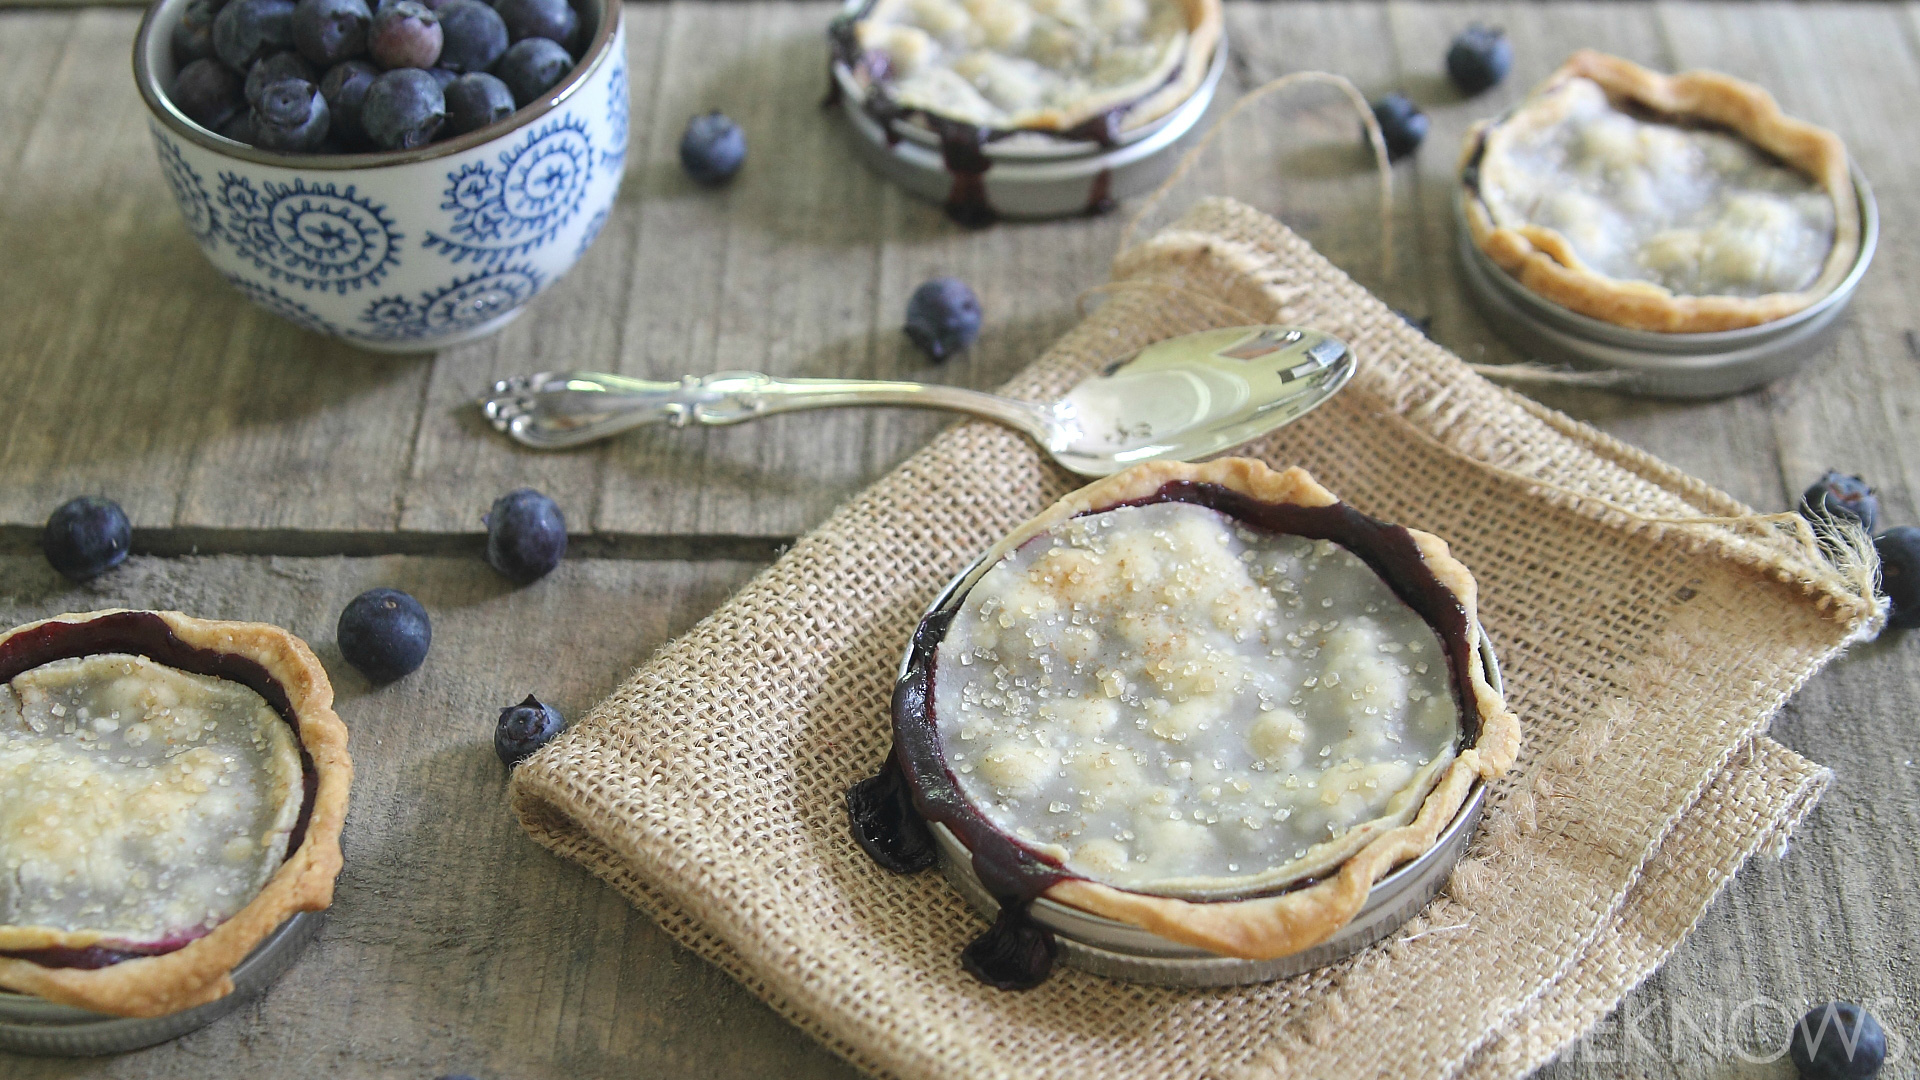 ... to eat, these Mason jar lid blueberry pies are a fun spin on dessert